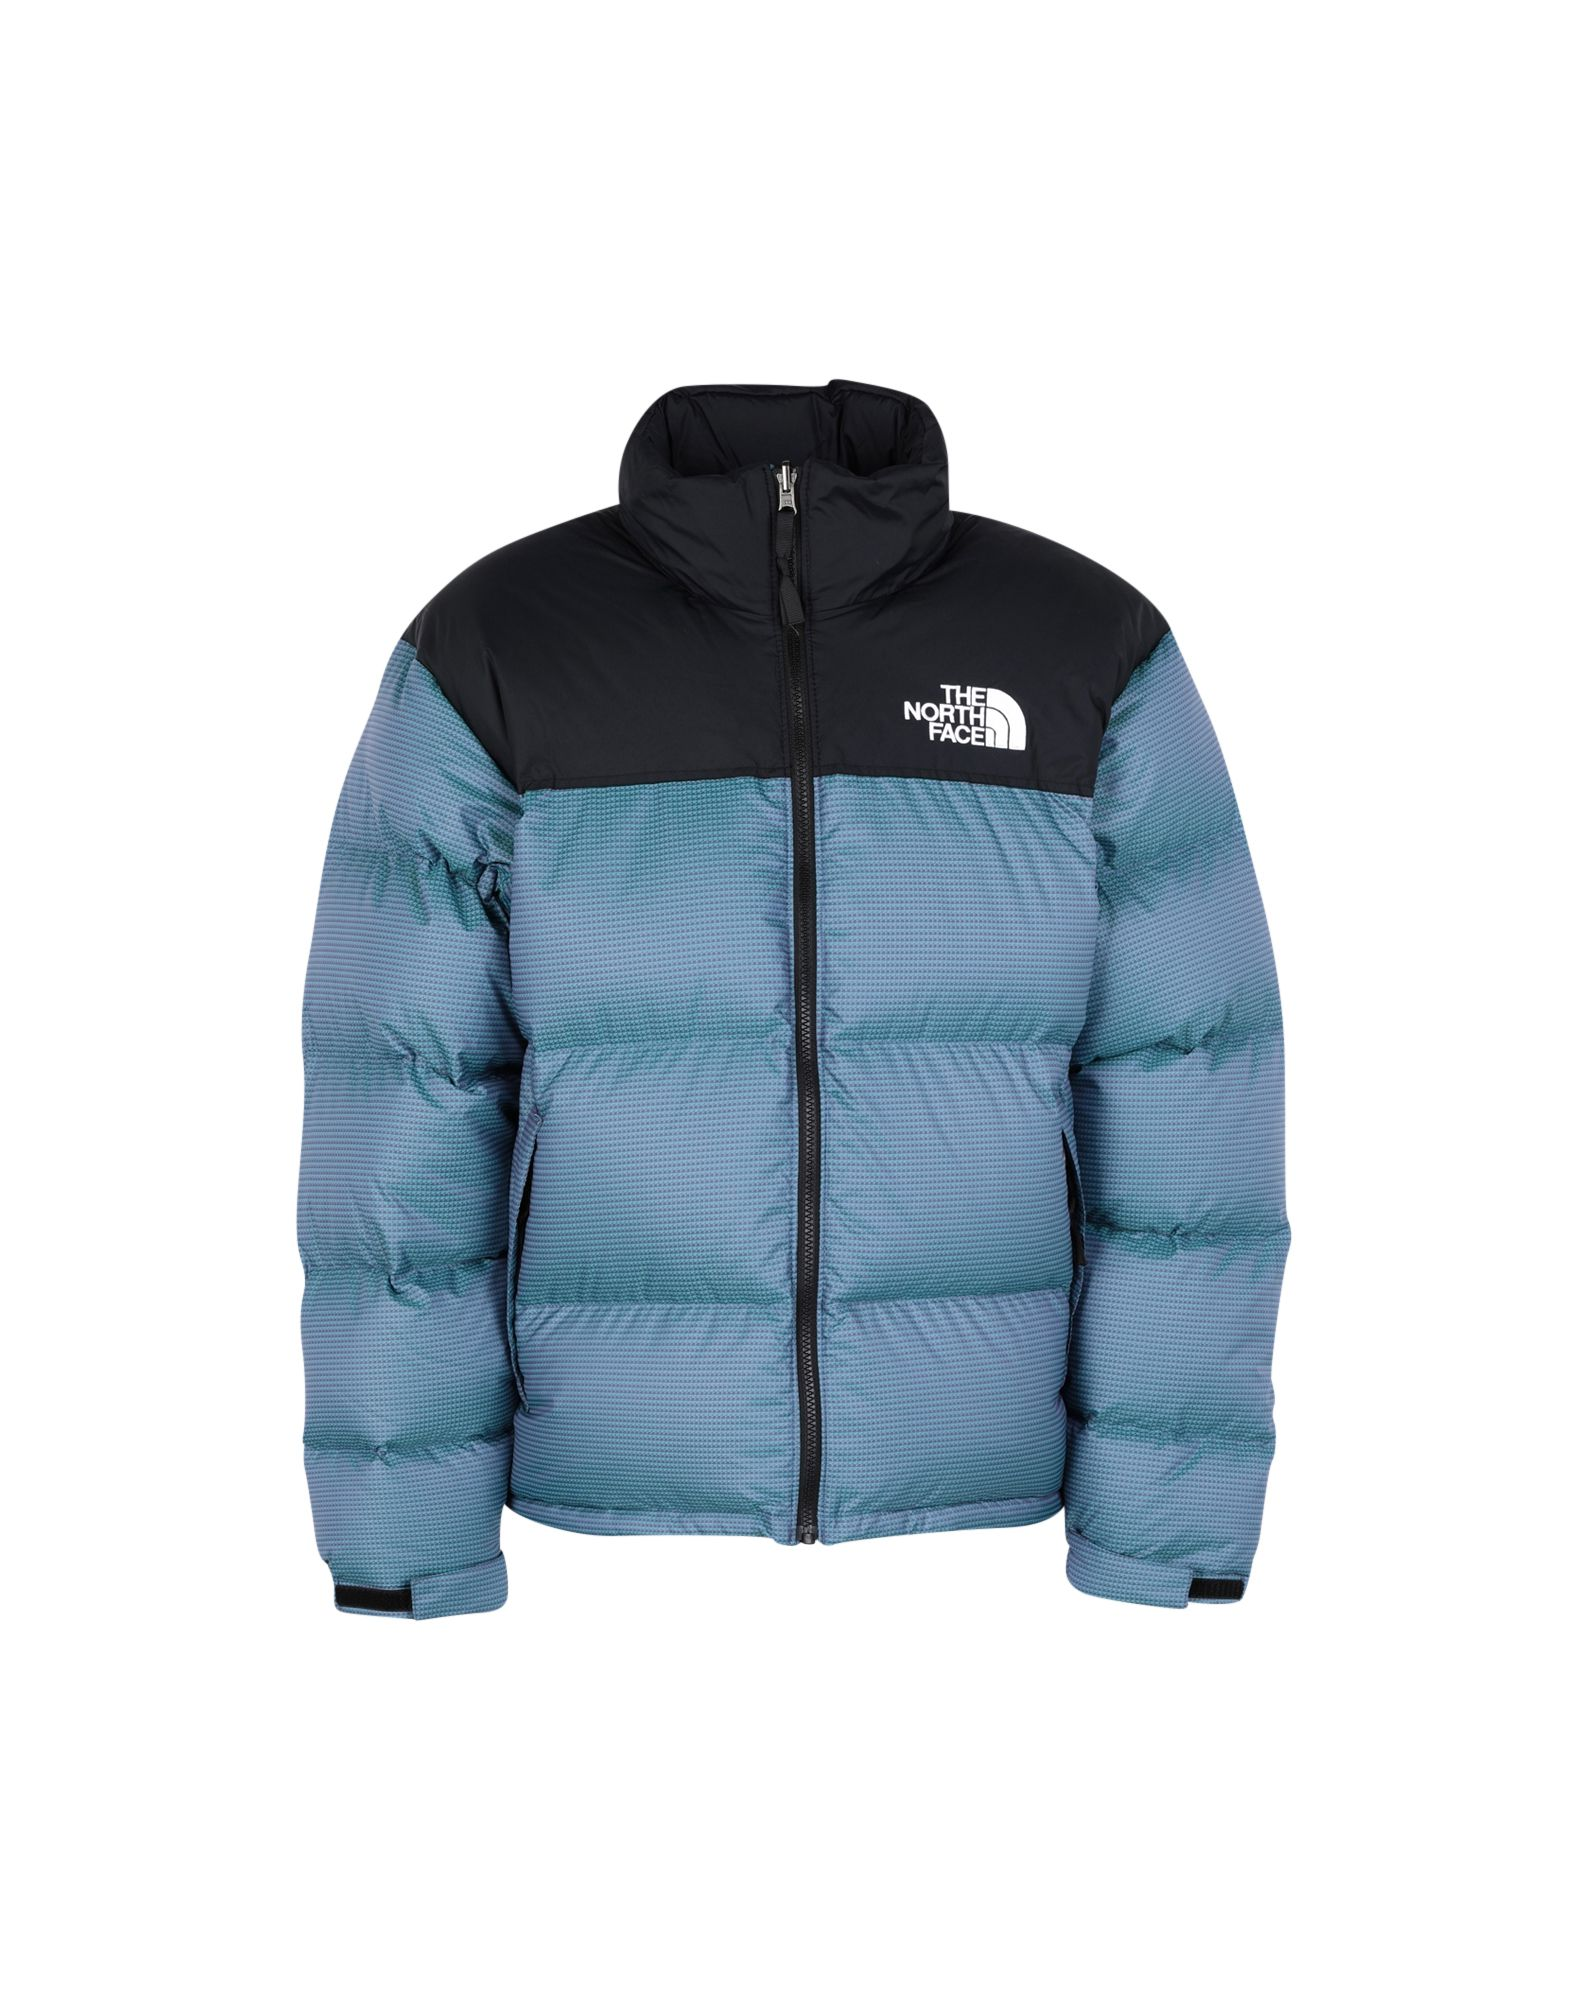 05beaee83 The North Face Men - The North Face Coats And Jackets - YOOX United ...